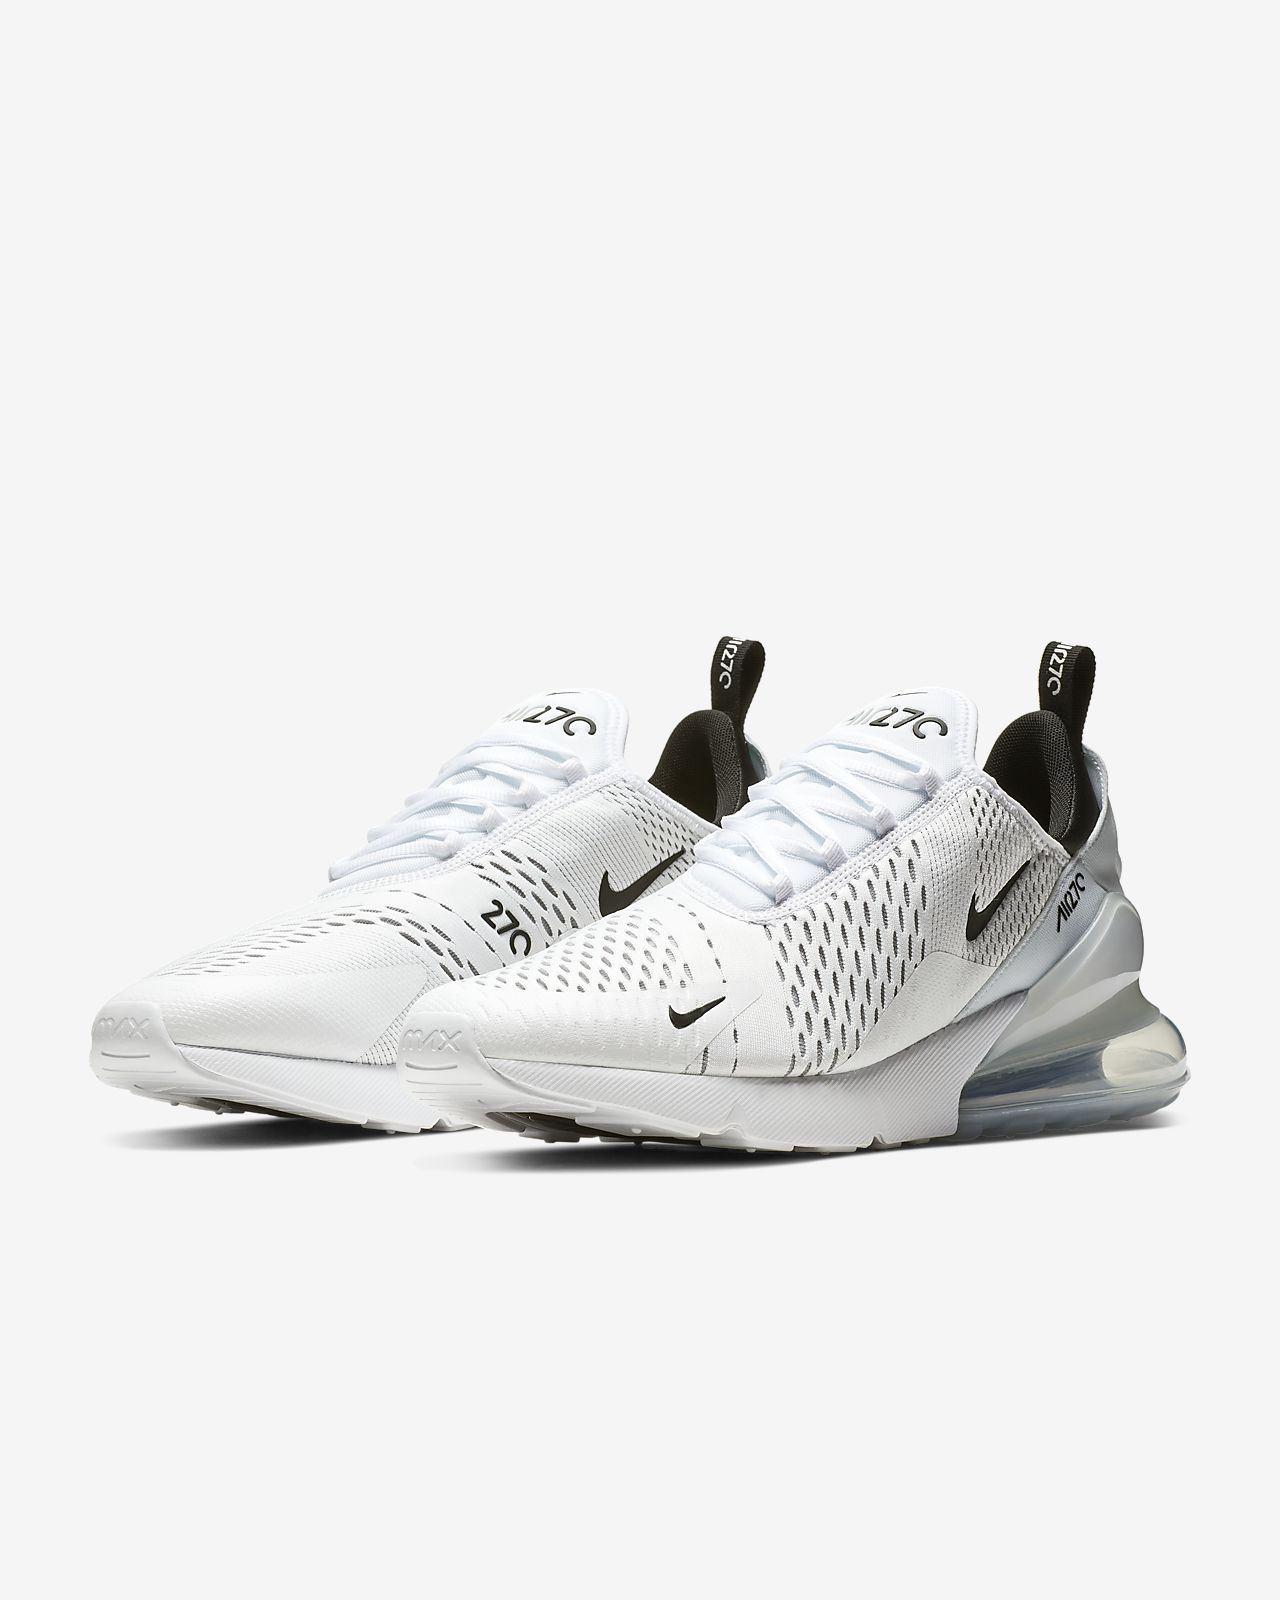 W Air Max 270 Oil Grey Nike AH6789 003 oil greyred